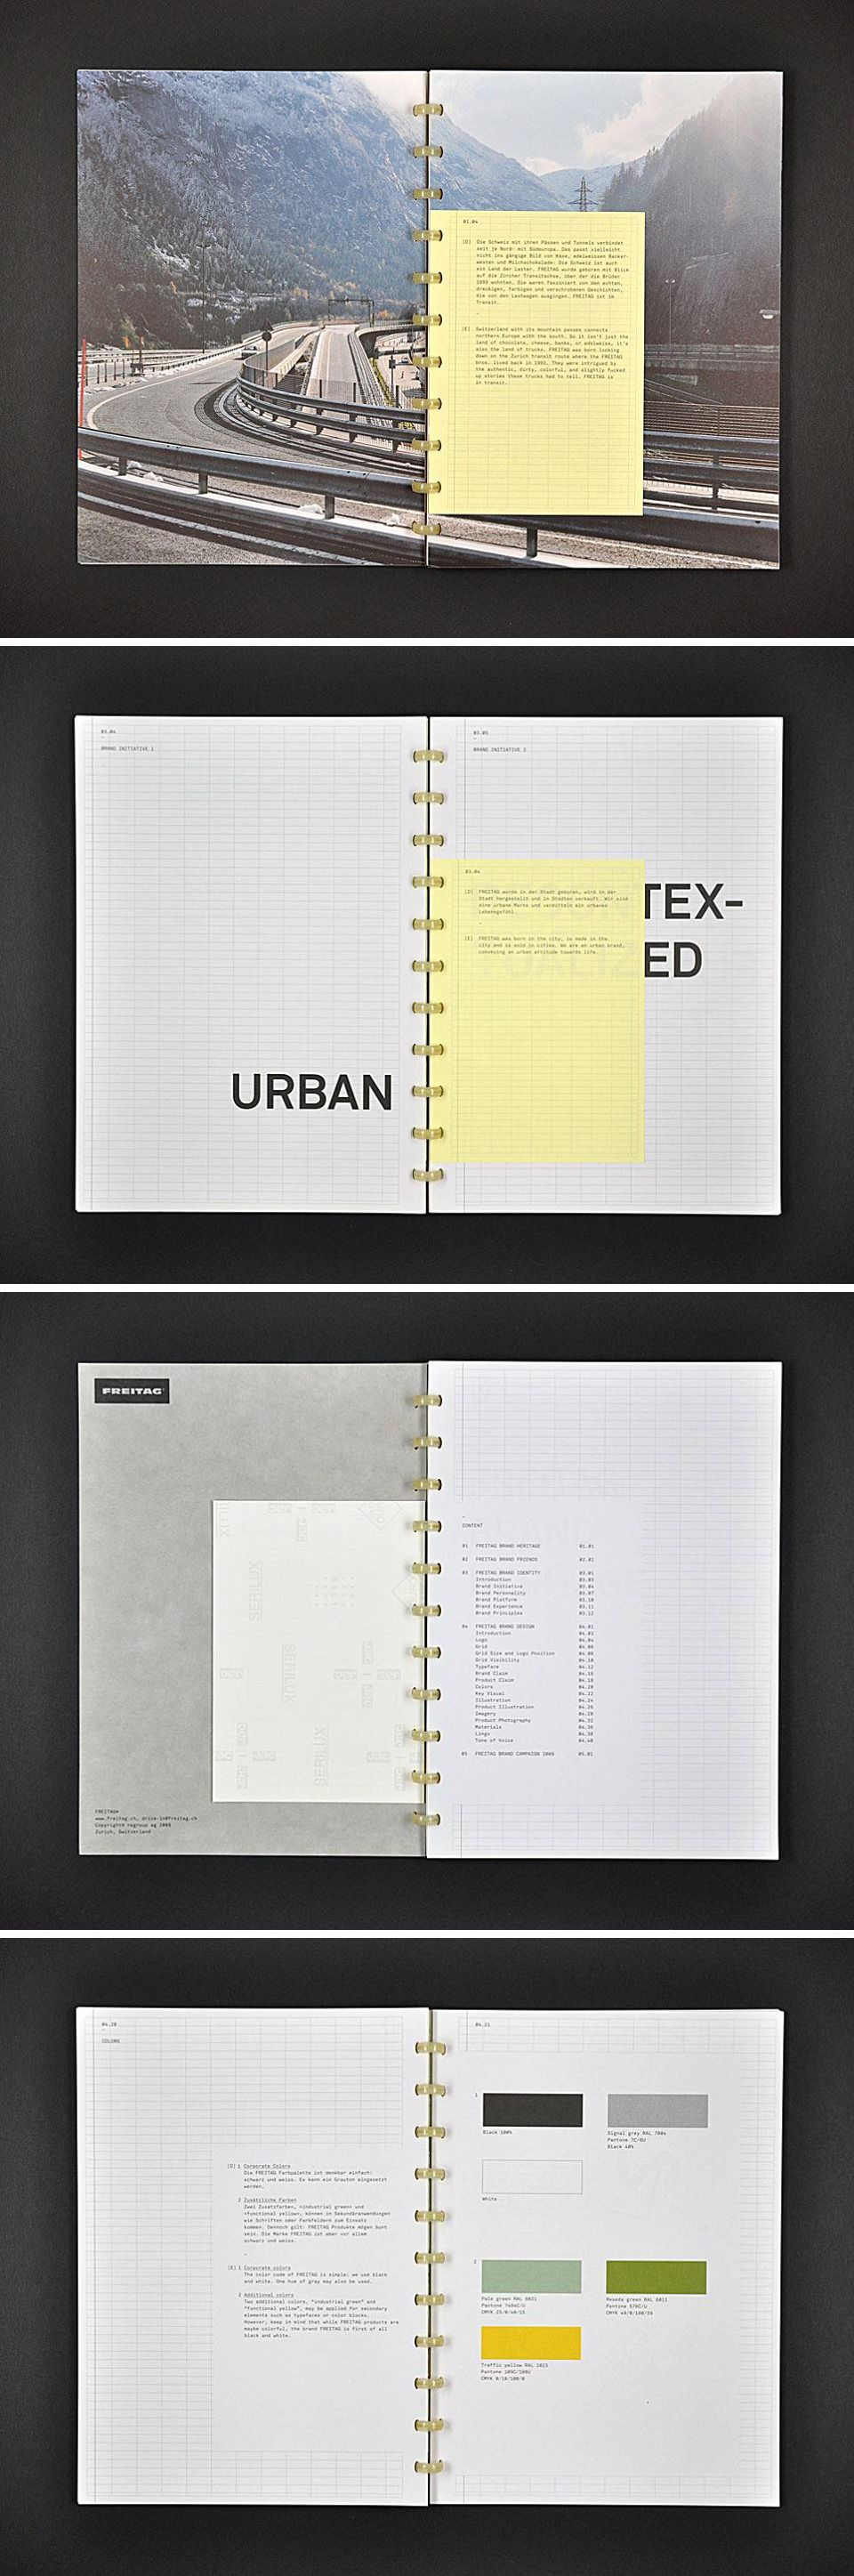 Book within a book | Publicações | Pinterest | Books, Layouts and ...